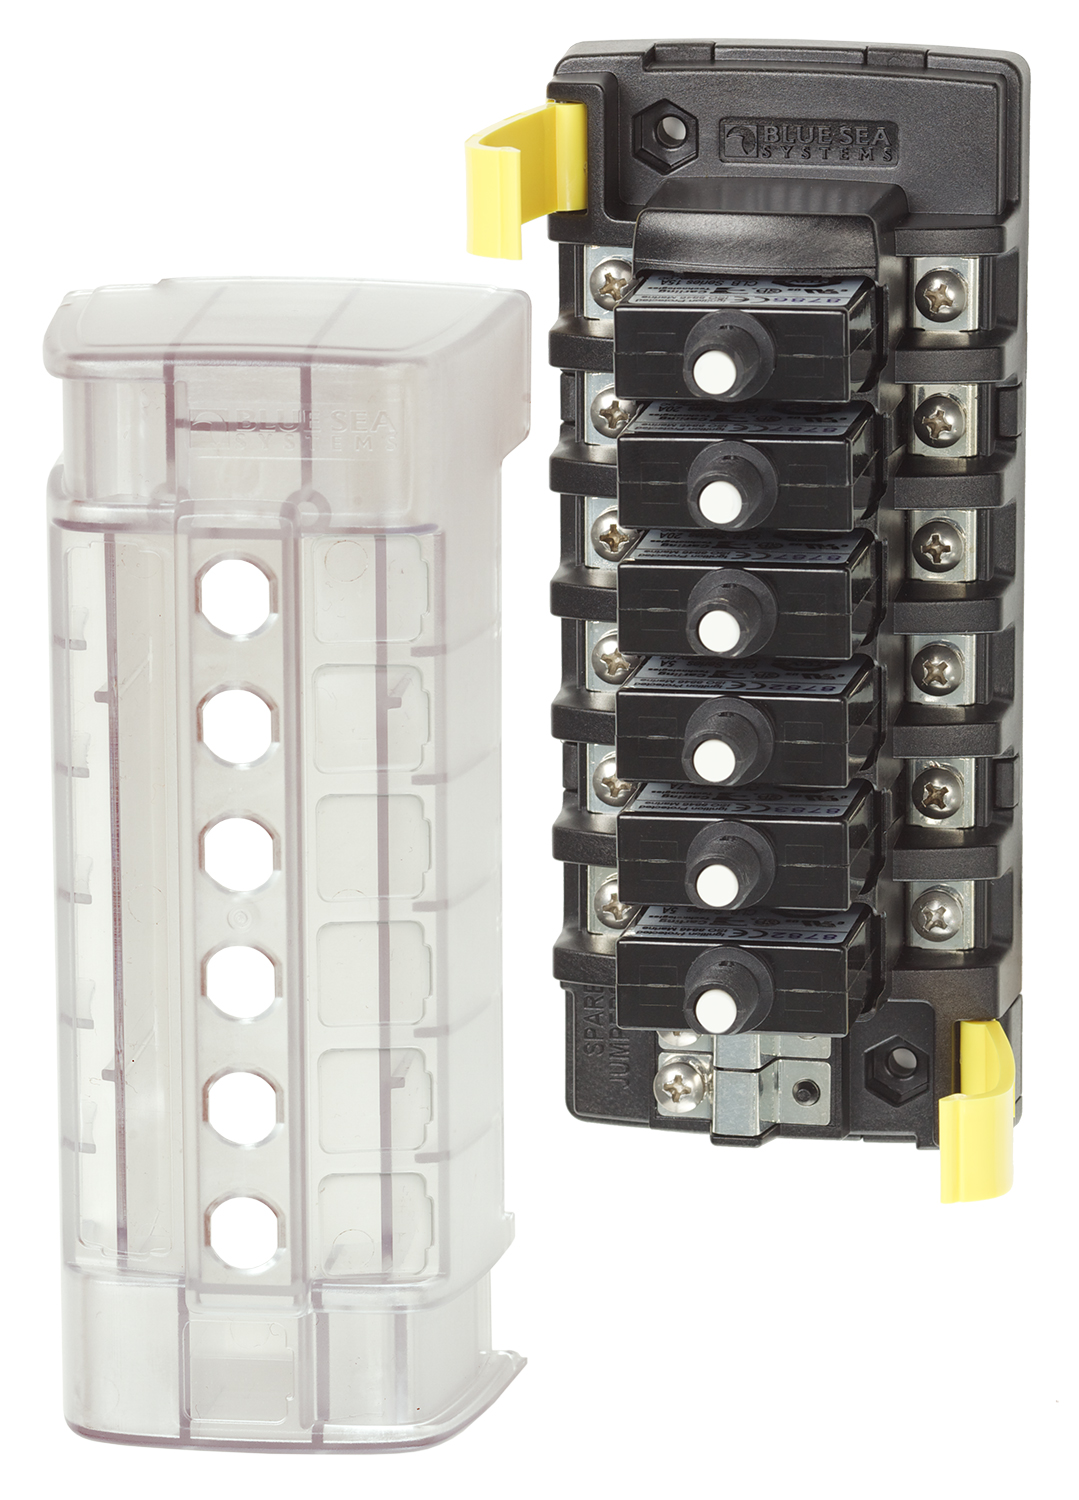 st clb circuit breaker block 6 independent circuits. Black Bedroom Furniture Sets. Home Design Ideas